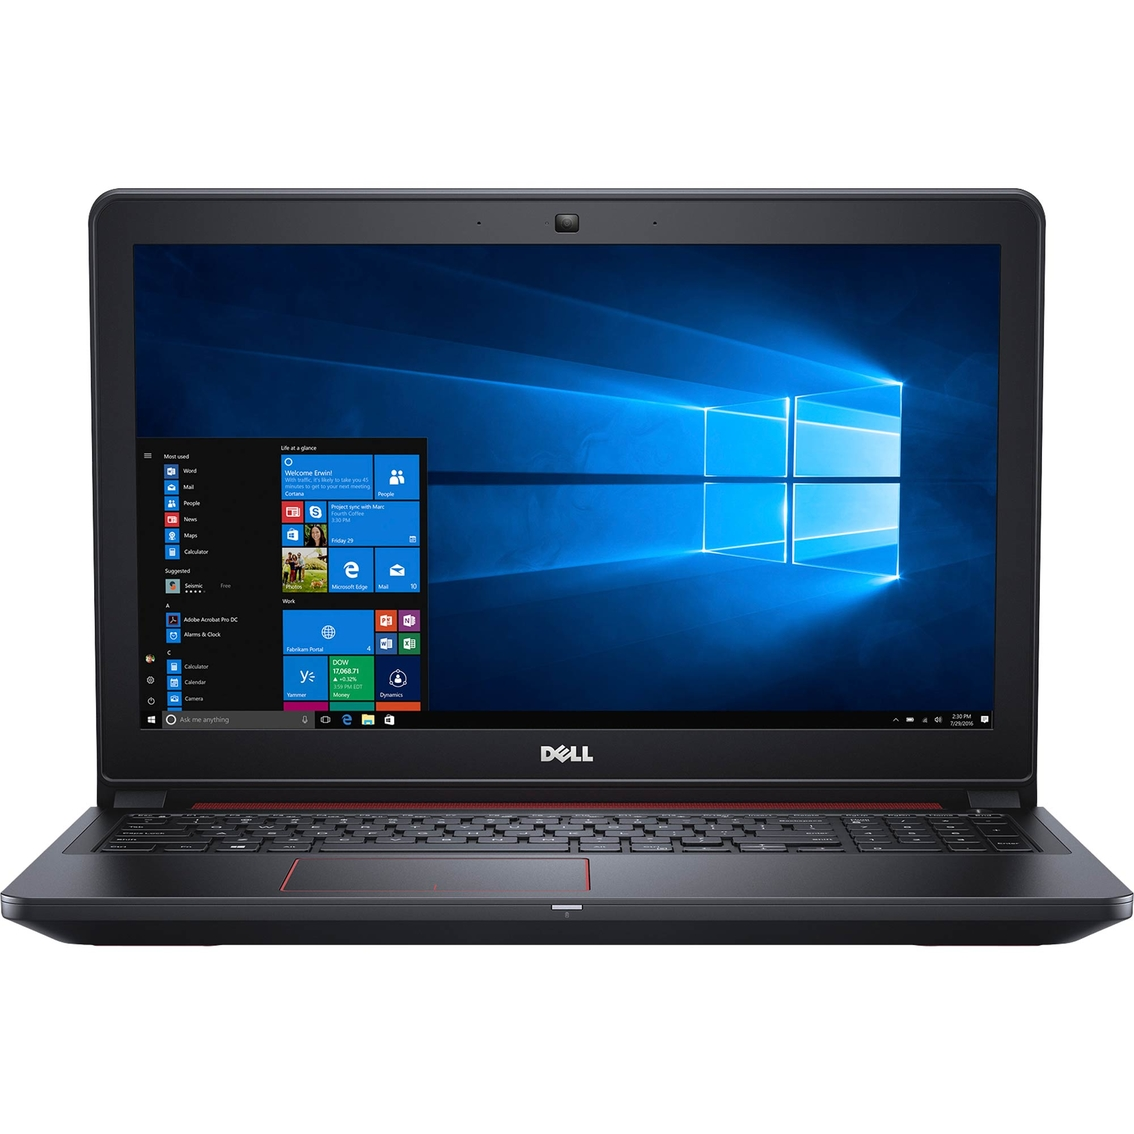 dell inspiron 15 5000 15 6 in fhd amd fx 9830p 12gb 1tb gaming notebook gaming laptops. Black Bedroom Furniture Sets. Home Design Ideas